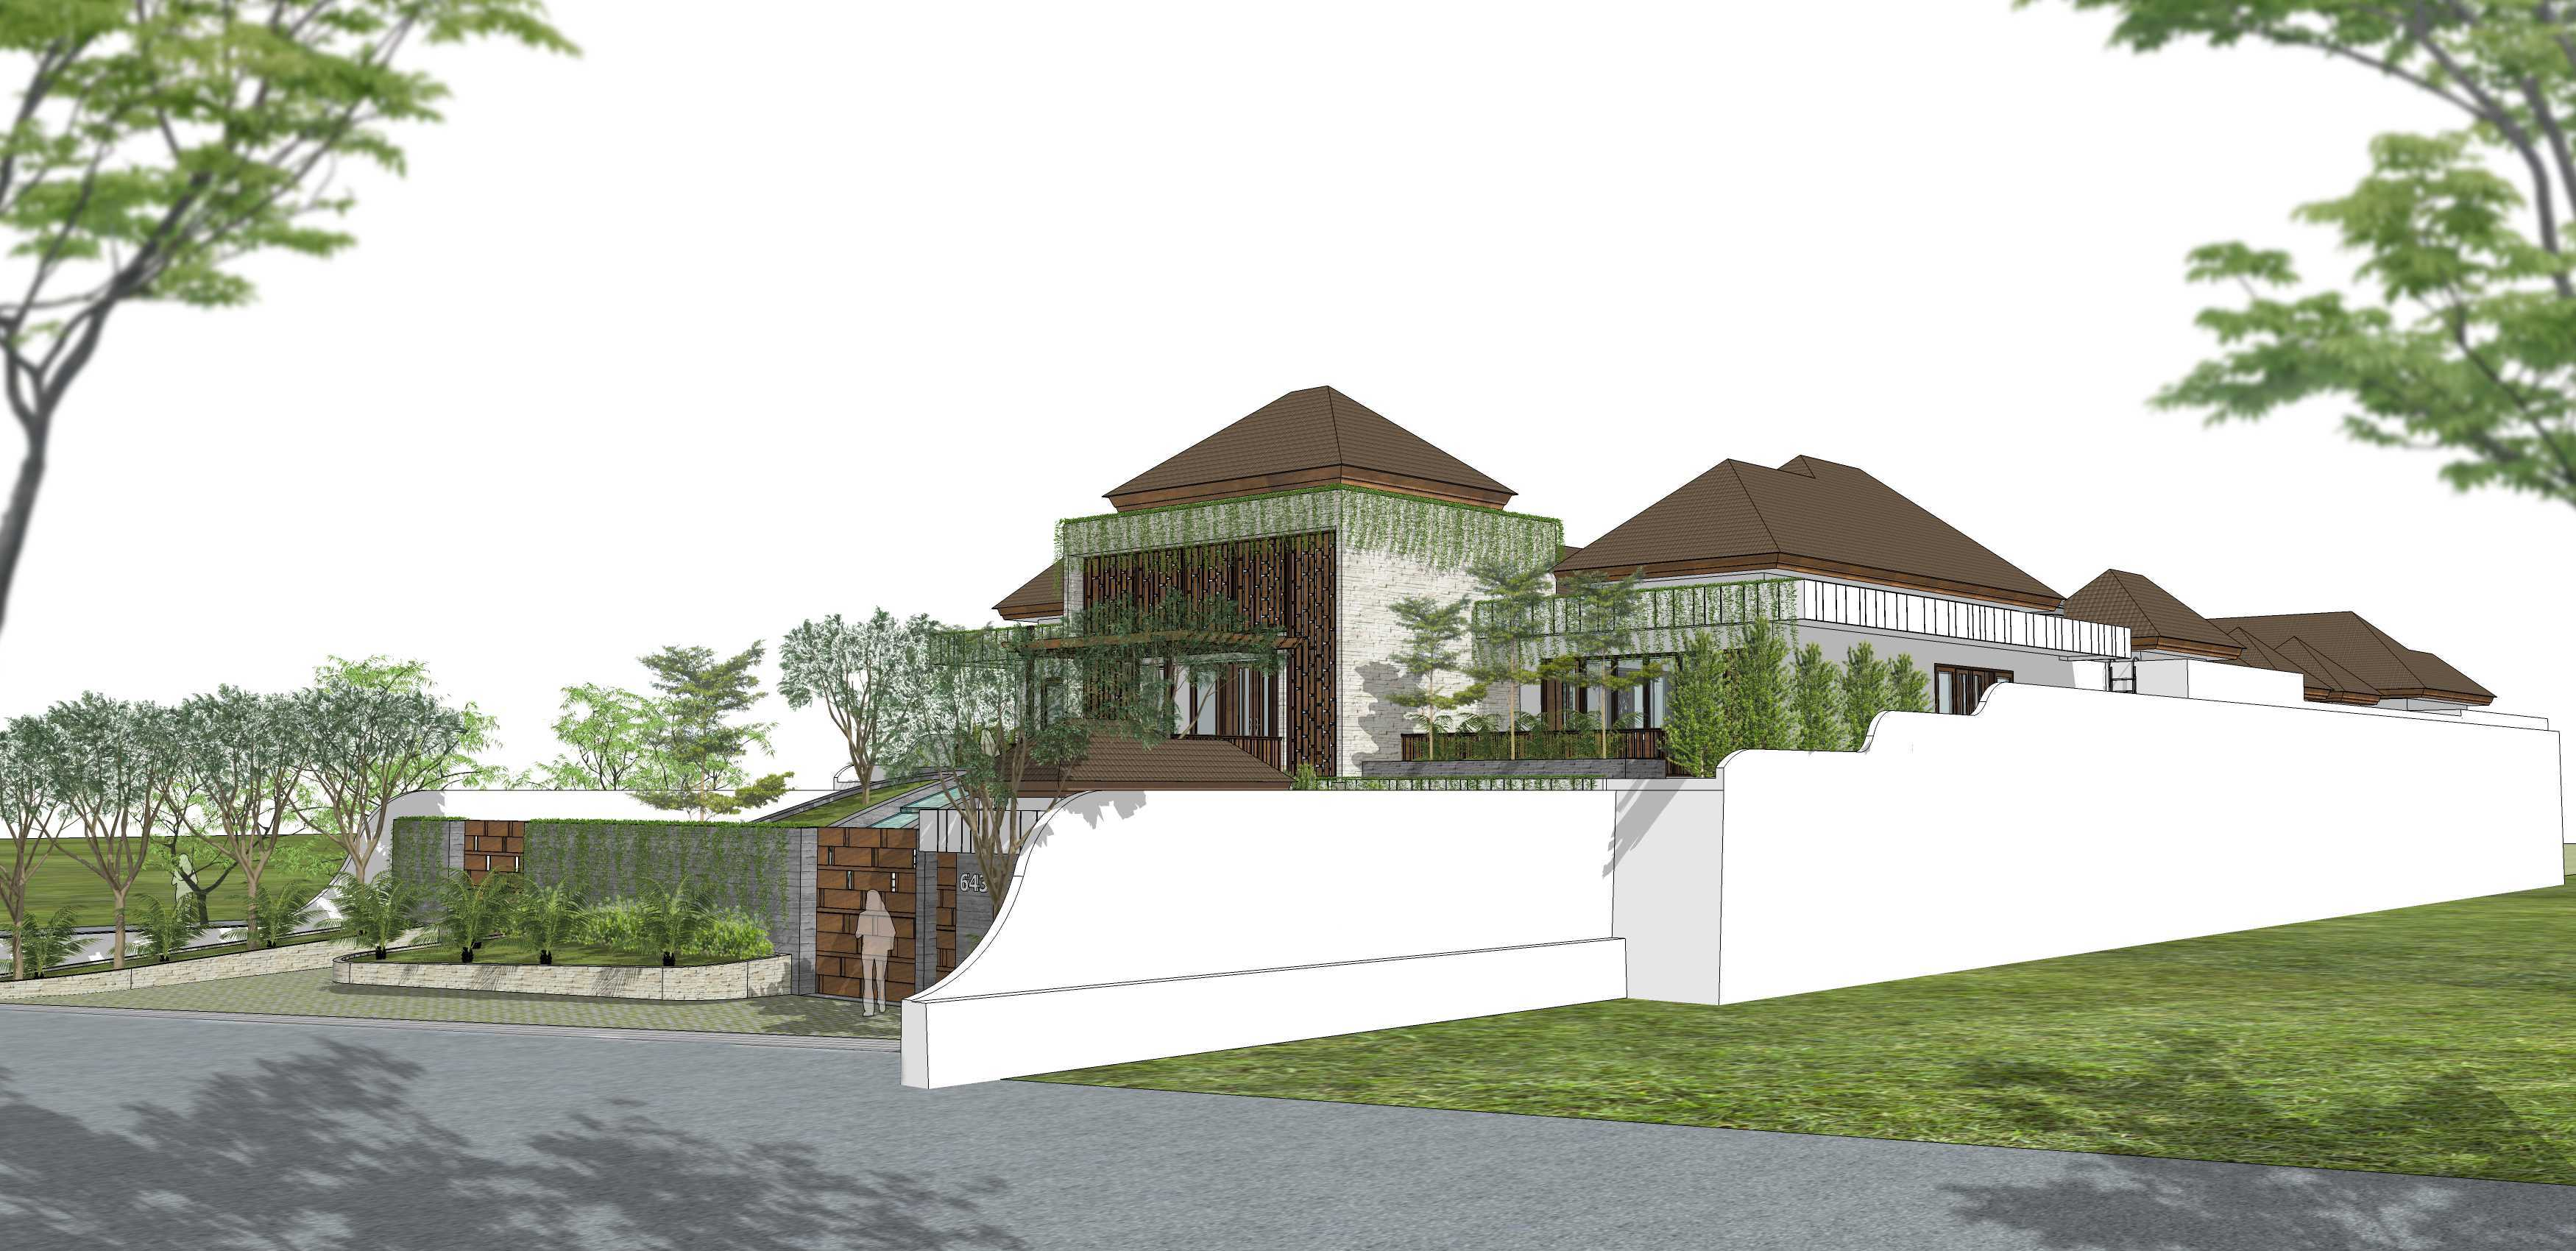 Miv Architects (Ar. Muhammad Ikhsan Hamiru, Iai & Partners) Rumah Sore  Soreang, Pare-Pare City, South Sulawesi, Indonesia Soreang, Pare-Pare City, South Sulawesi, Indonesia 1 Tropis  33944